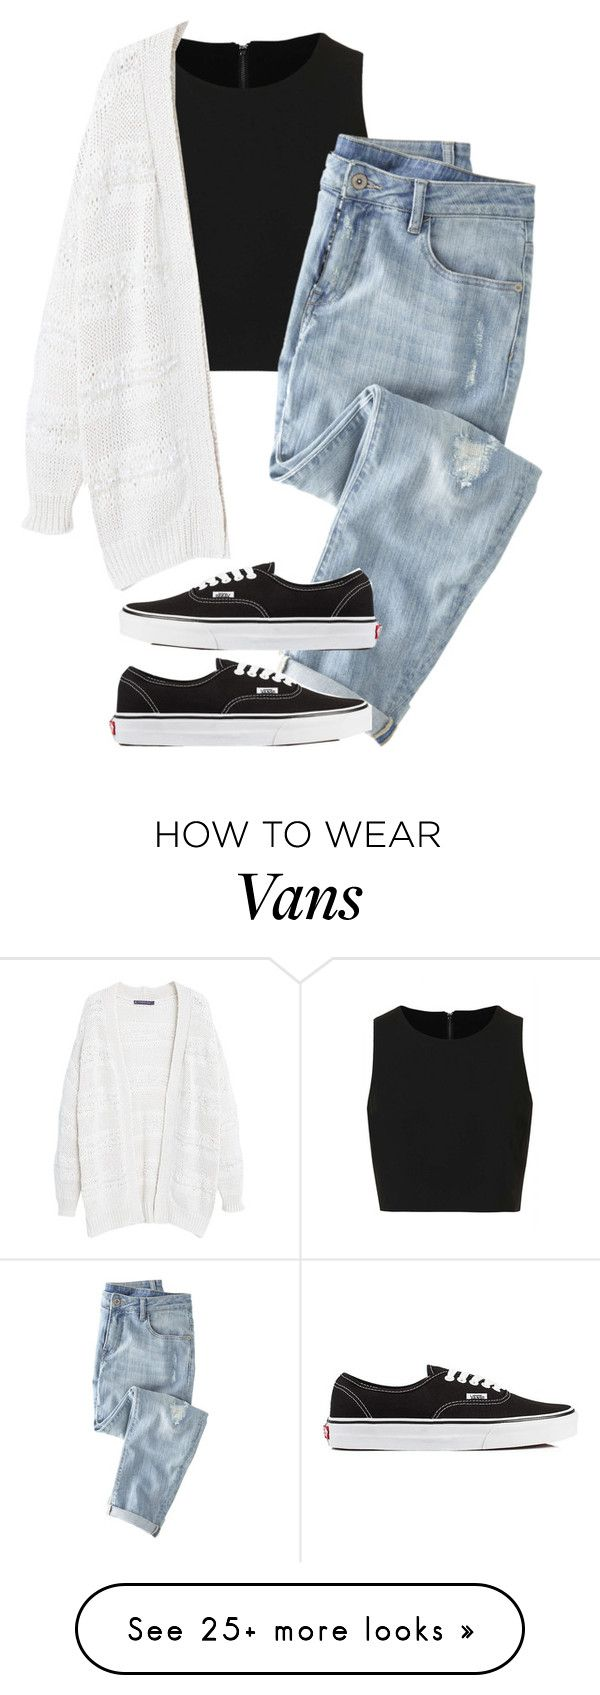 """#PrayForCali #PrayForParis #PrayForTheWorld #PeaceOnEarth"" by tbh-ella on Polyvore featuring Topshop, Wrap, Violeta by Mango, Vans, peaceonearth, prayforparis, prayfortheworld, PrayforCalifornia and PrayForCali"